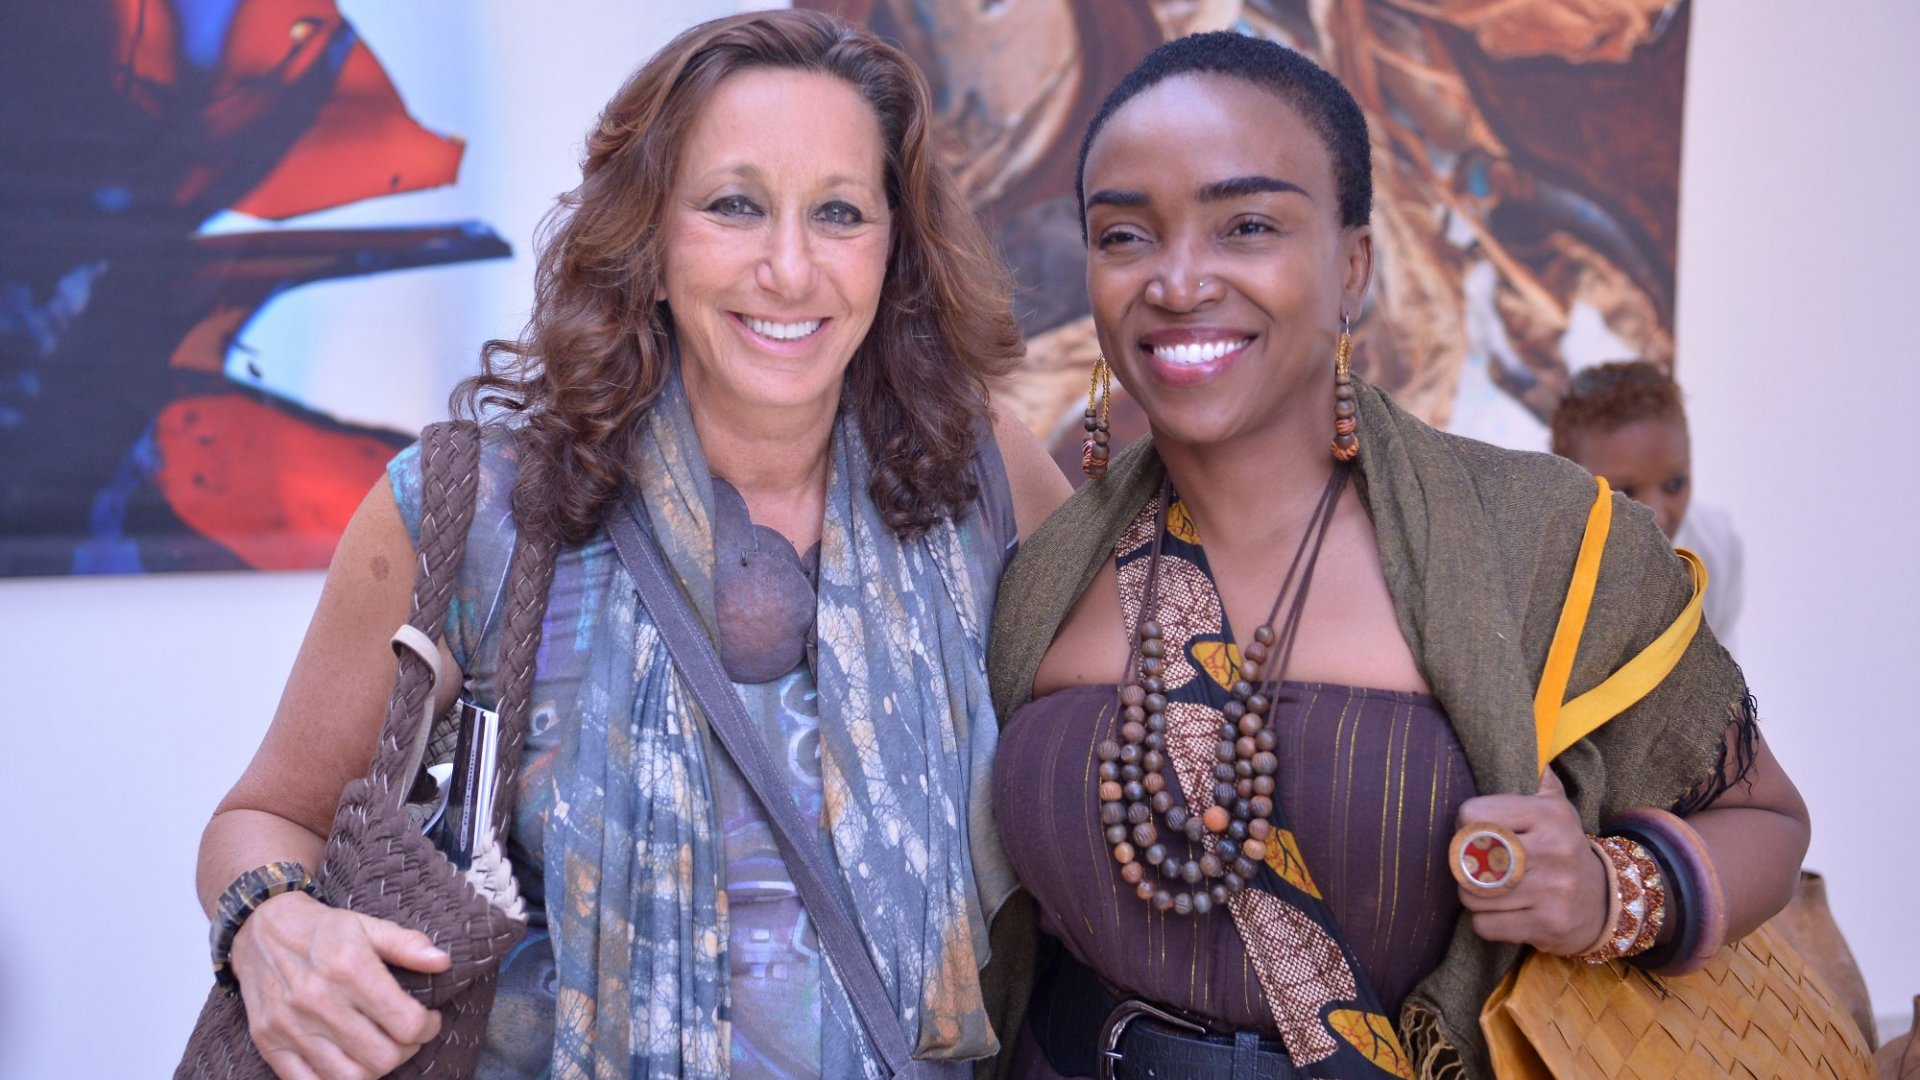 Donna Karan S Next Grand Ambition Will Create A Positive Shift In Fashion Inc Com